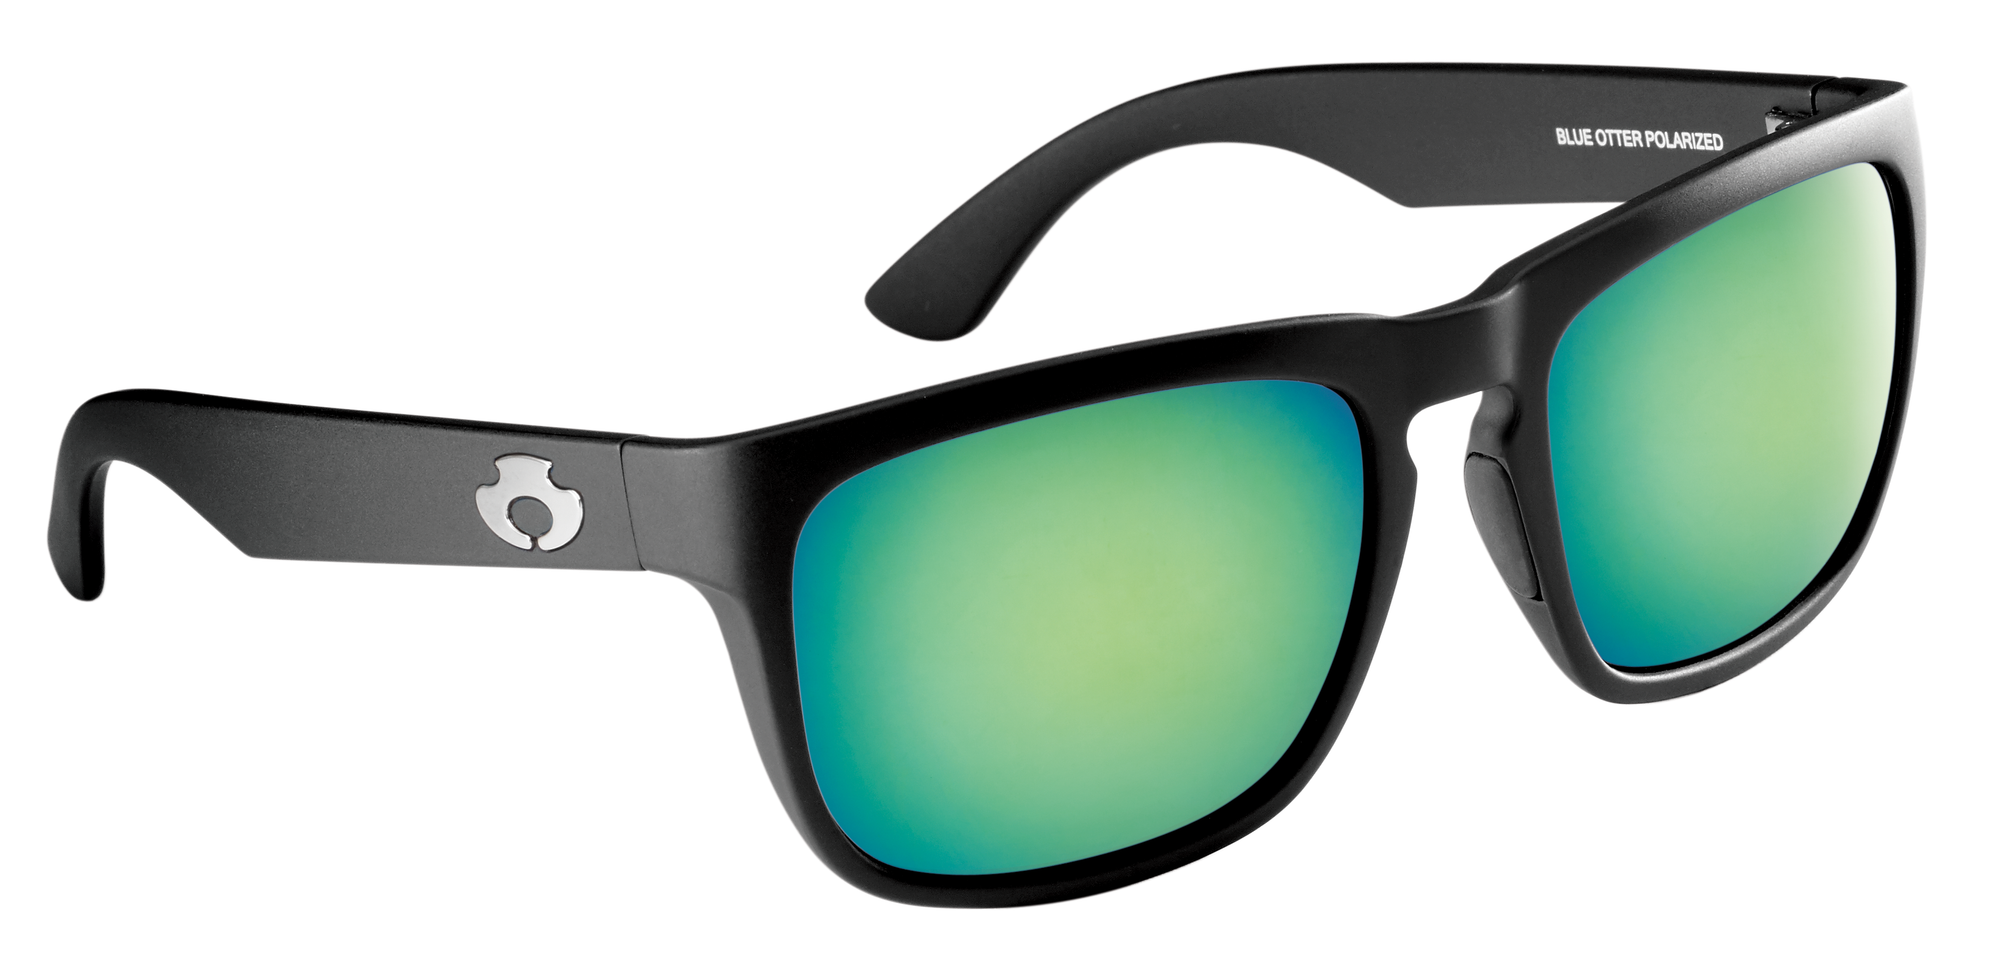 |Polarized Sunglasses| |Cumberland| Matte Black-Deep Green| NYLON